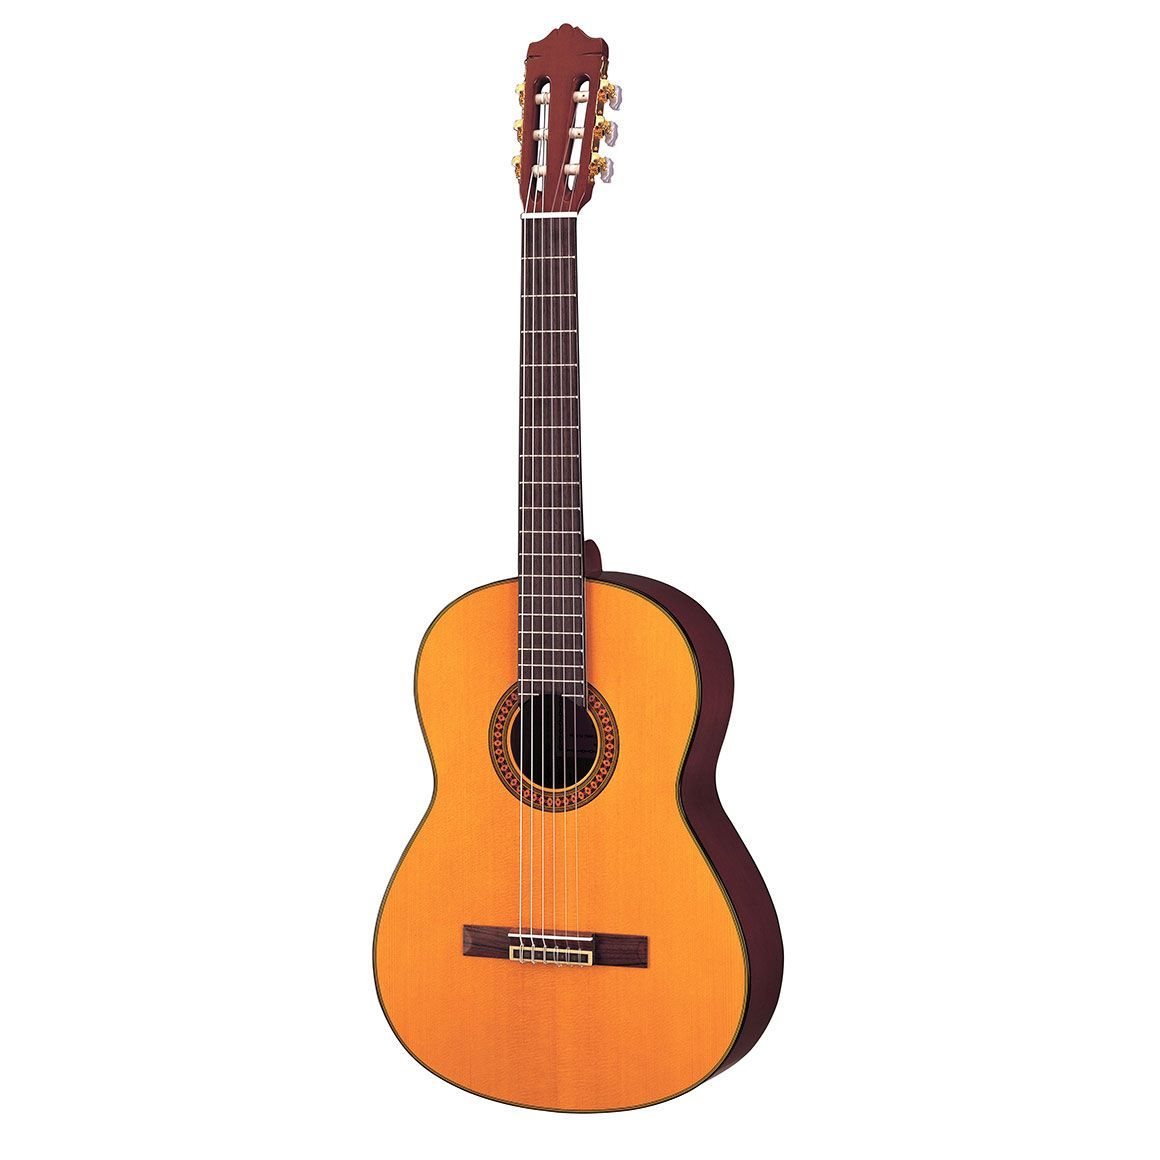 Review Yamaha C 80 Yamaha C 80 Acoustic Guitar Yamaha C 80